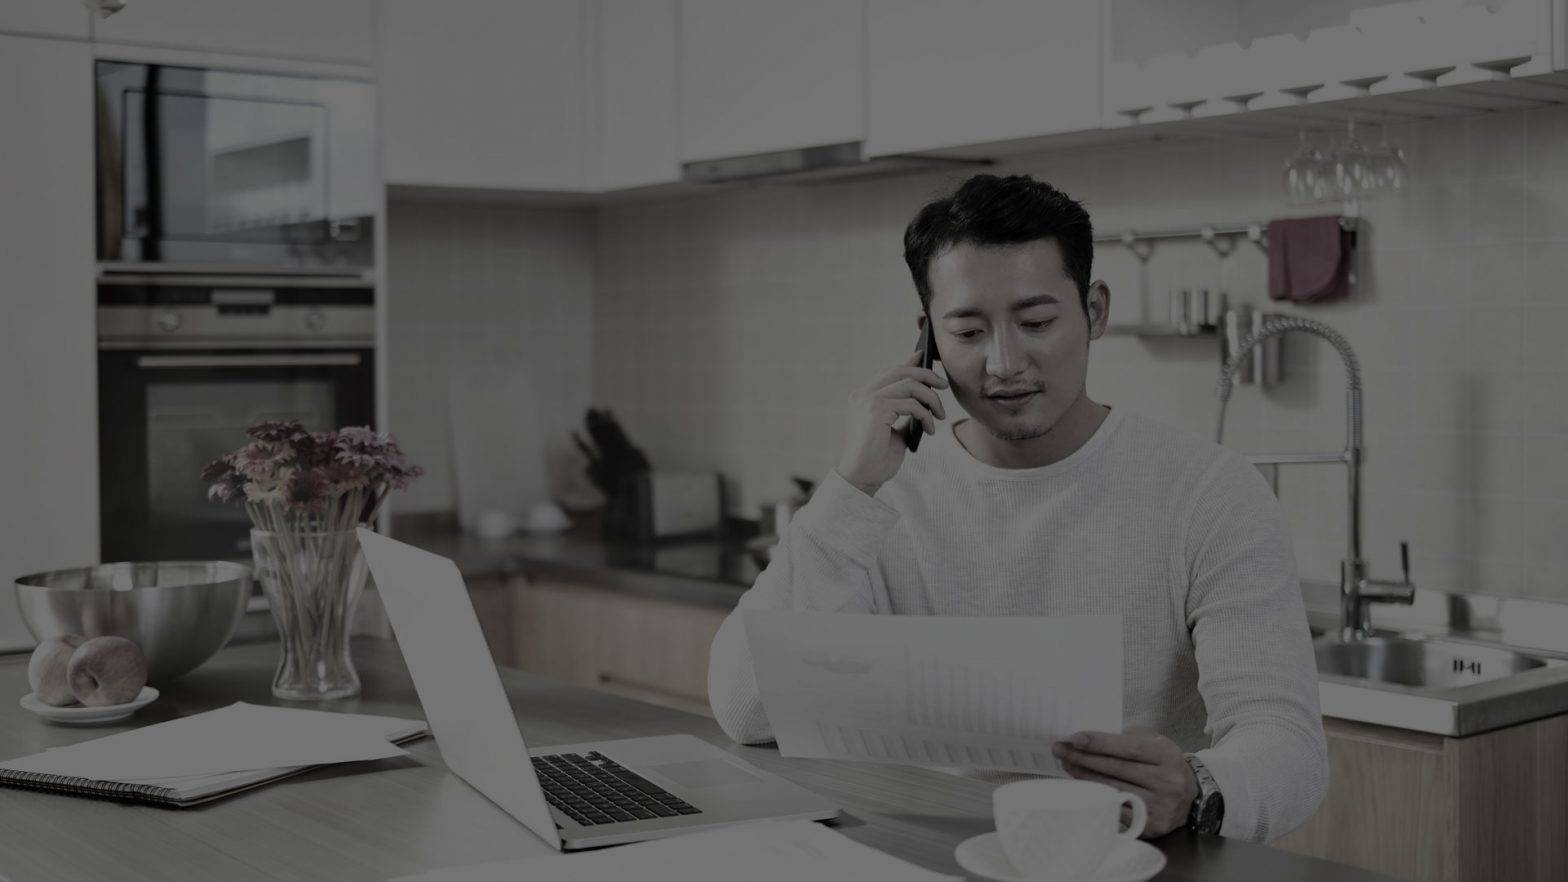 man working remotely to implement business goals